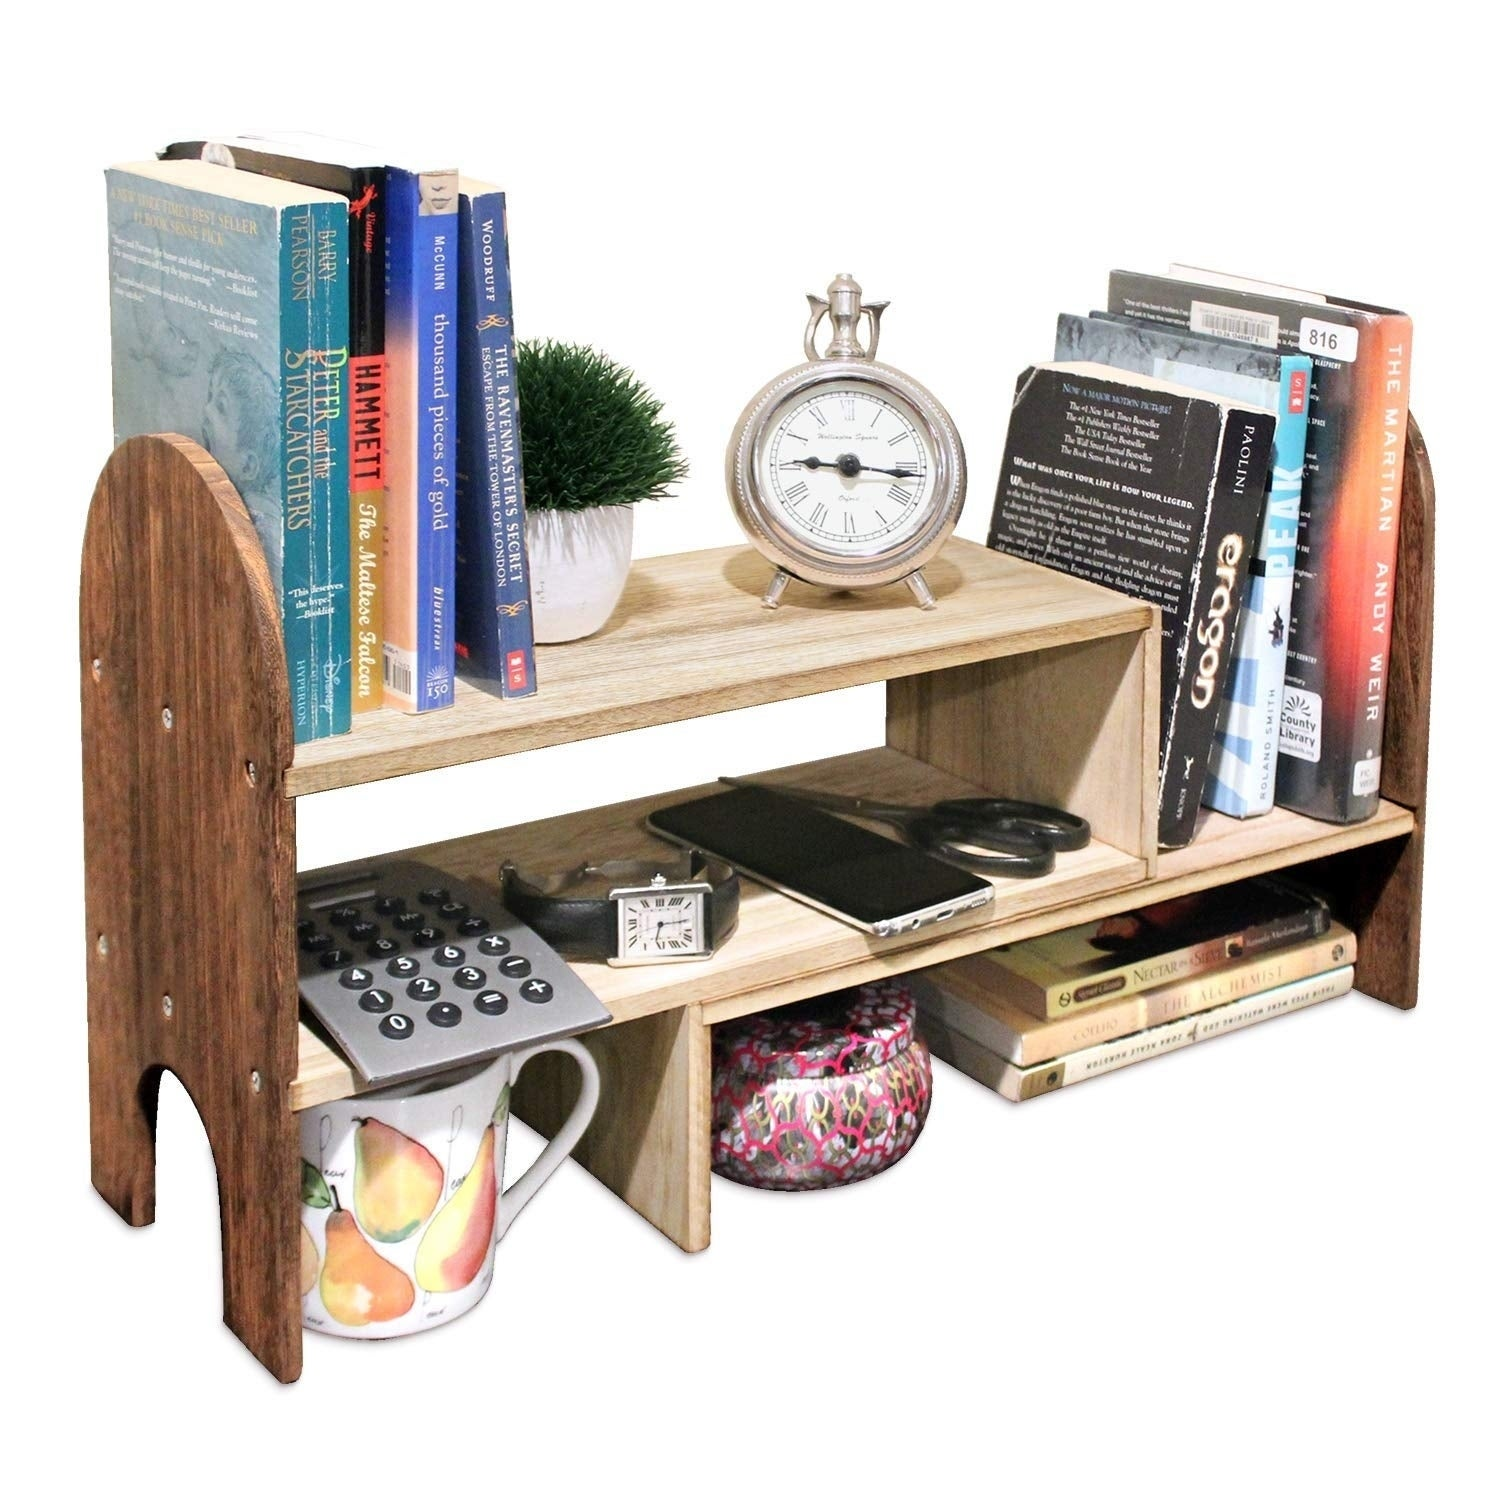 Ikee Design Adjustable Desktop Organizer Shelf Rack Counter Bookcase